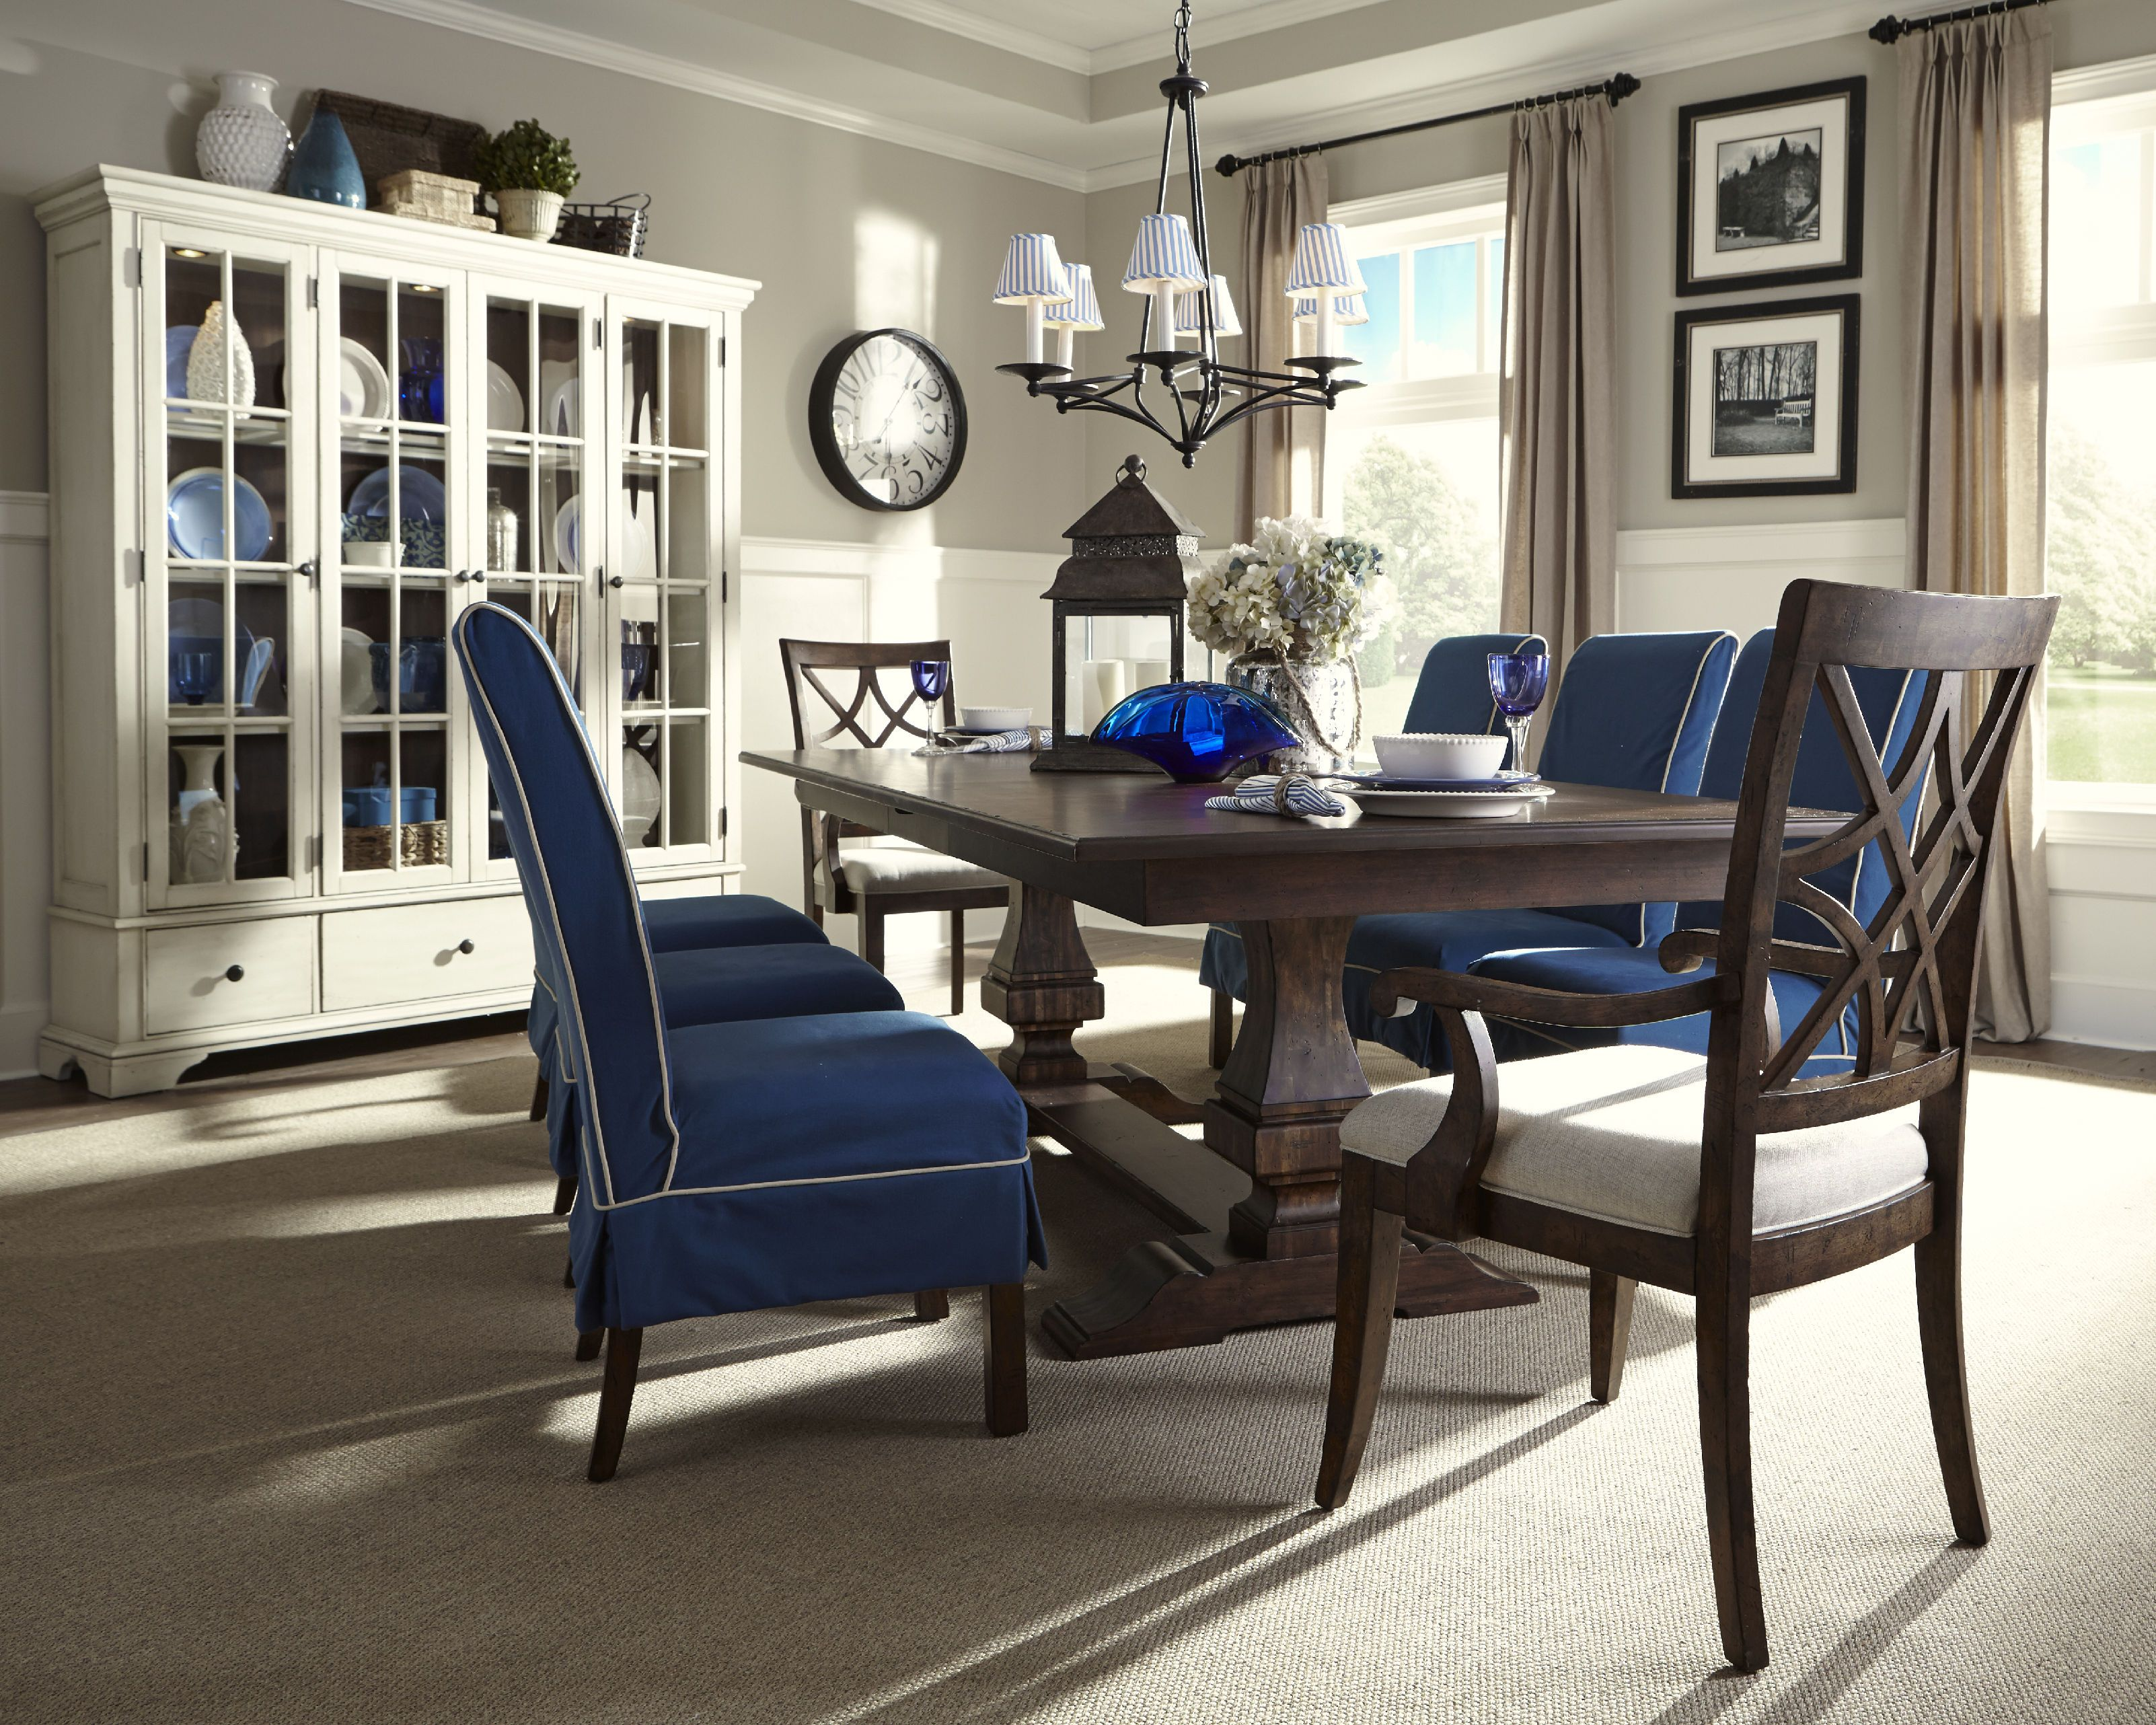 Trisha Yearwood Dining Room Trisha's Table Dining Room Table Classy Klaussner Dining Room Furniture Design Decoration